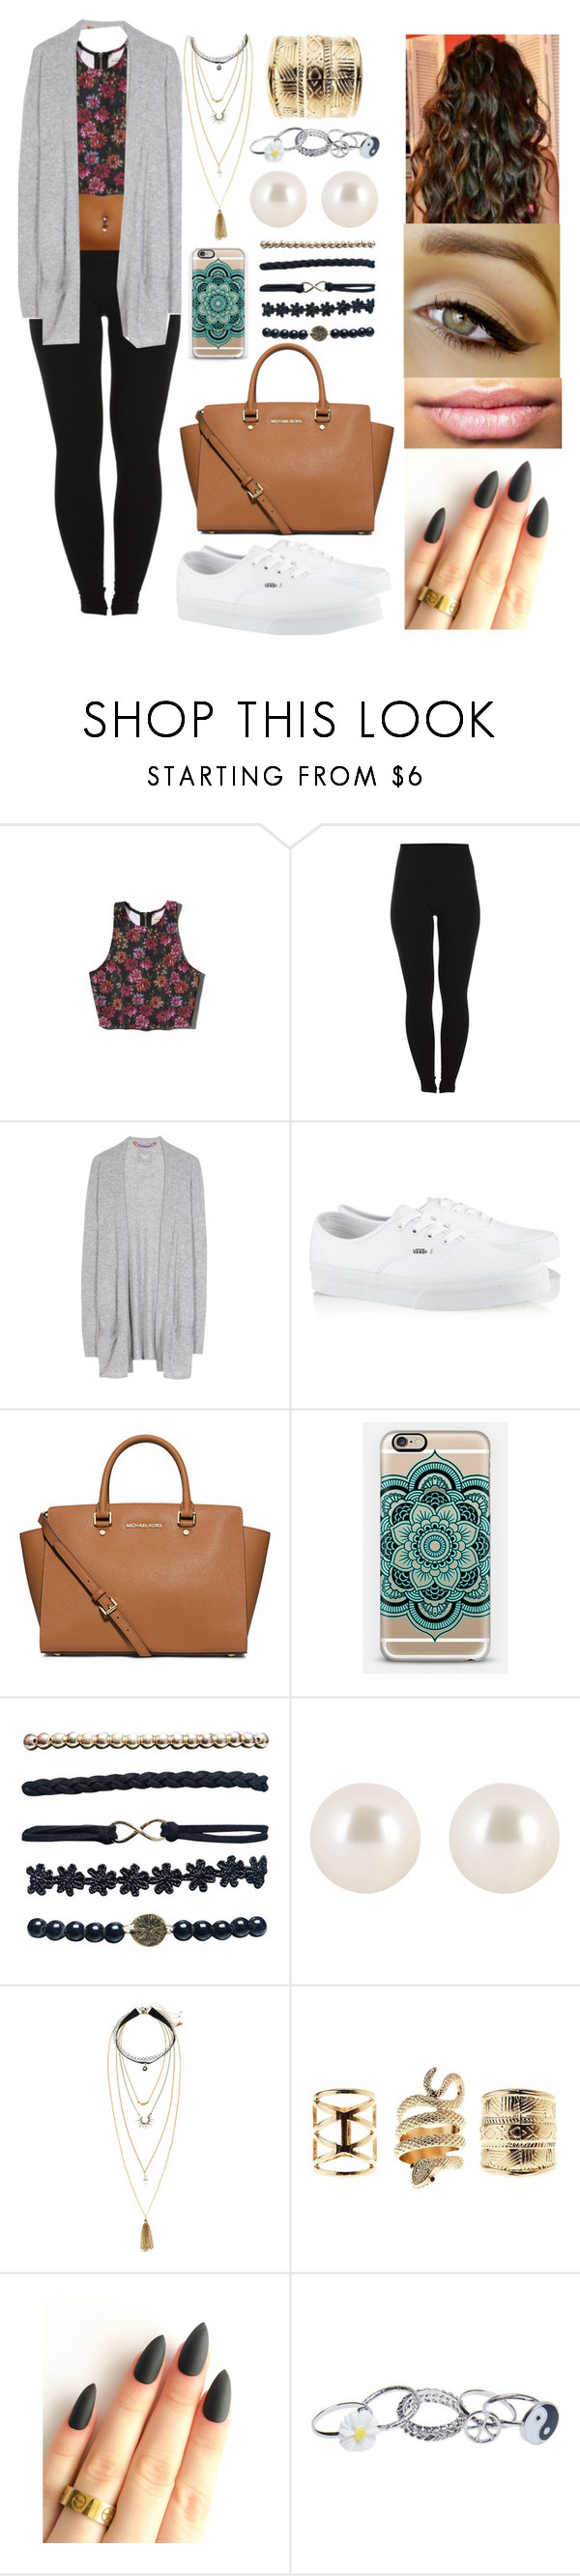 """."" by bshd ❤ liked on Polyvore featuring Abercrombie & Fitch, Pieces, Dear Cashmere, Vans, MICHAEL Michael Kors, Wet Seal, Henri Bendel, H&M and Charlotte Russe"